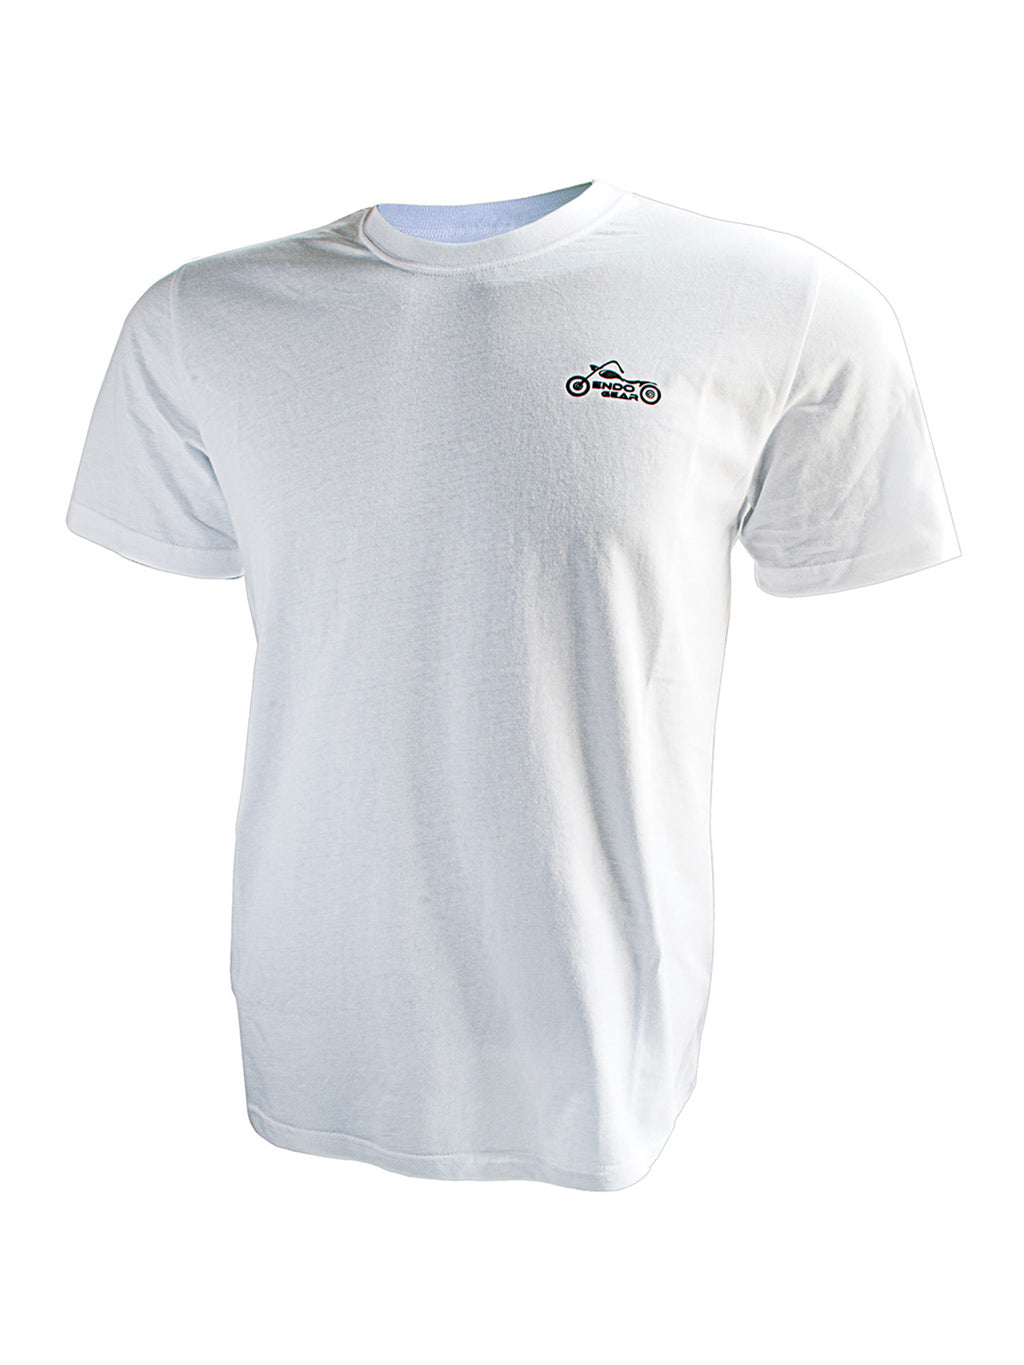 Best Plain T-Shirts For Men